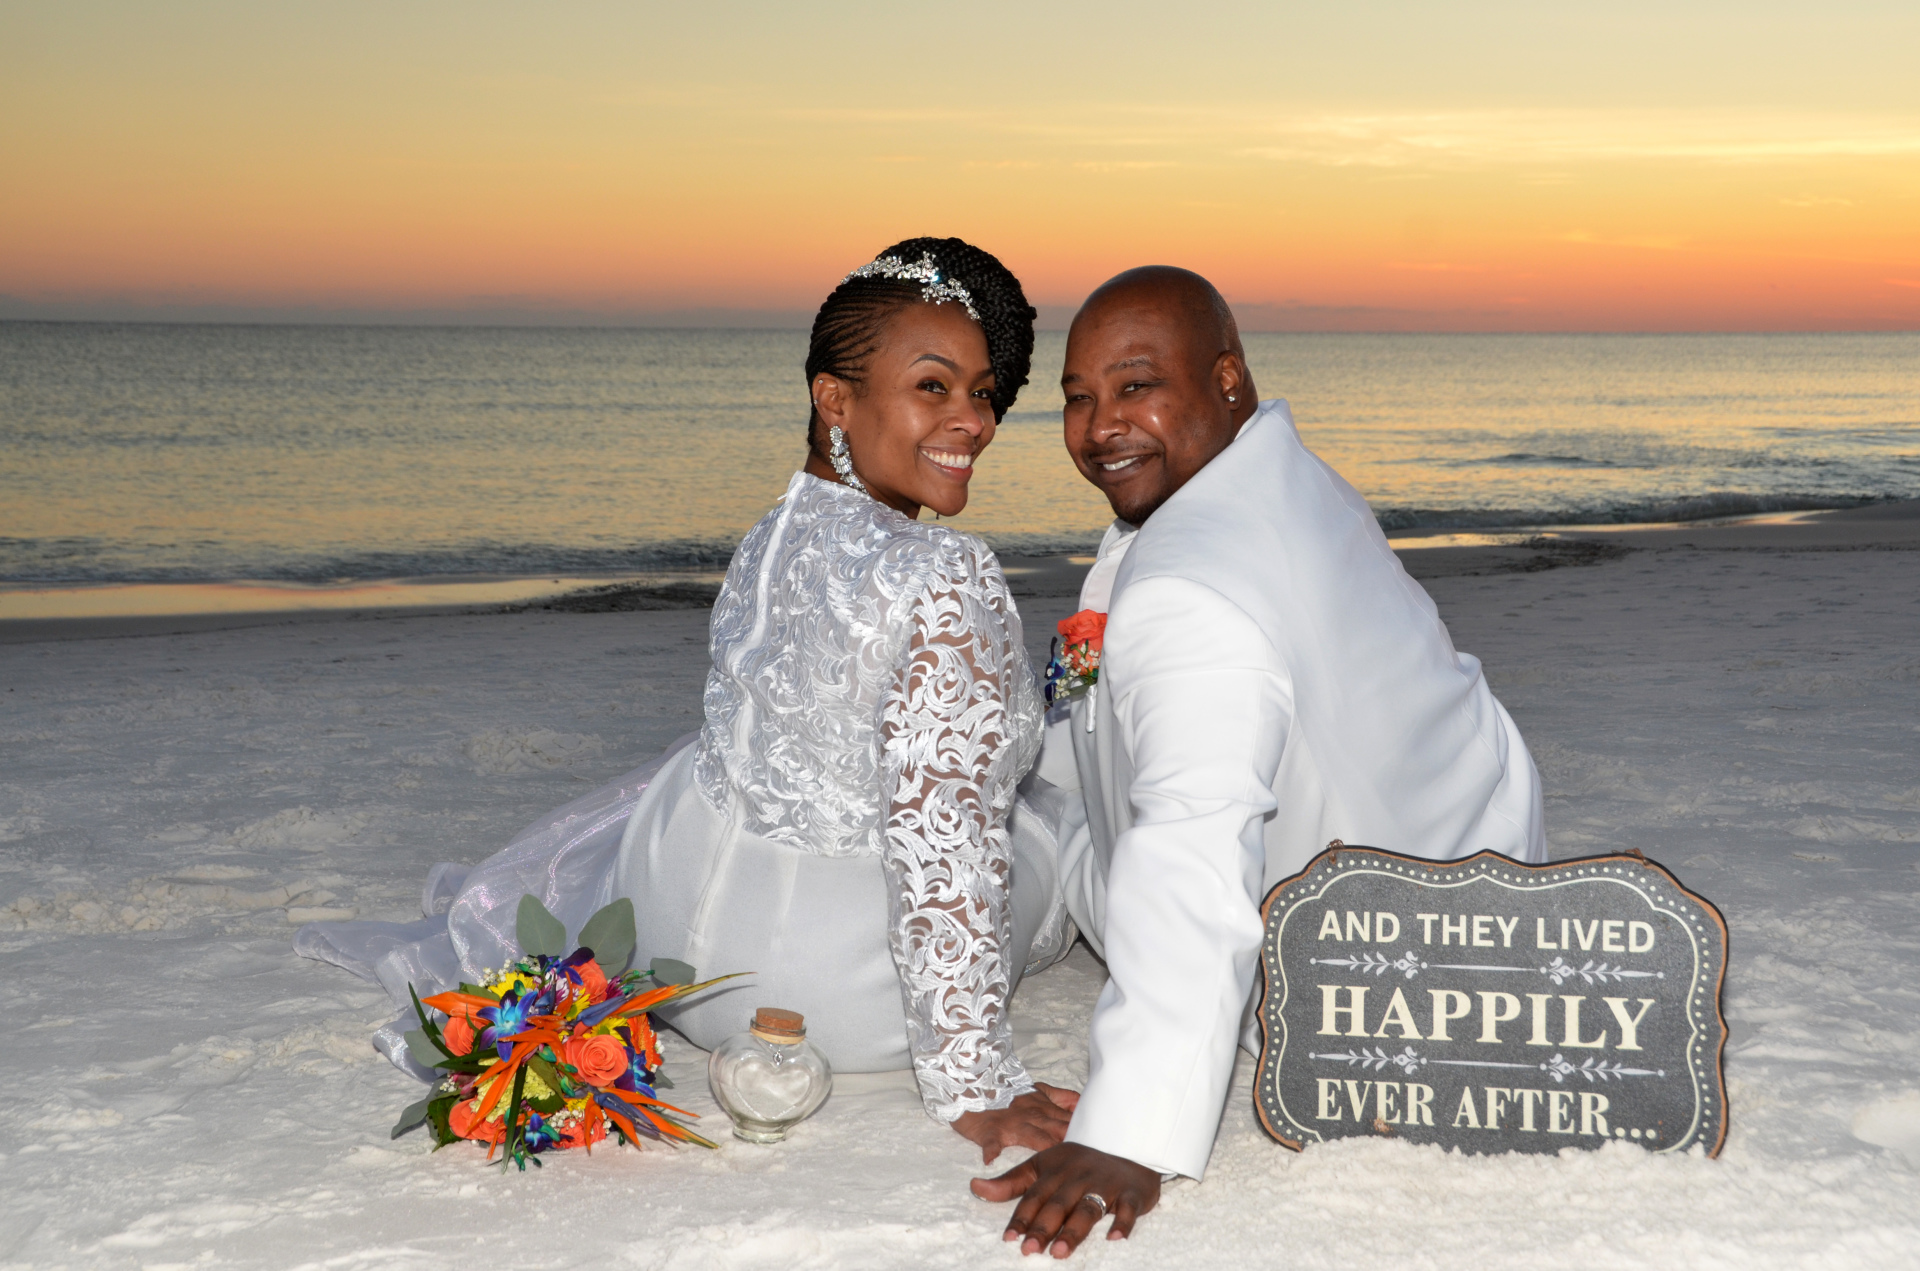 sunset beach wedding, destin, barefoot, fort walton beach